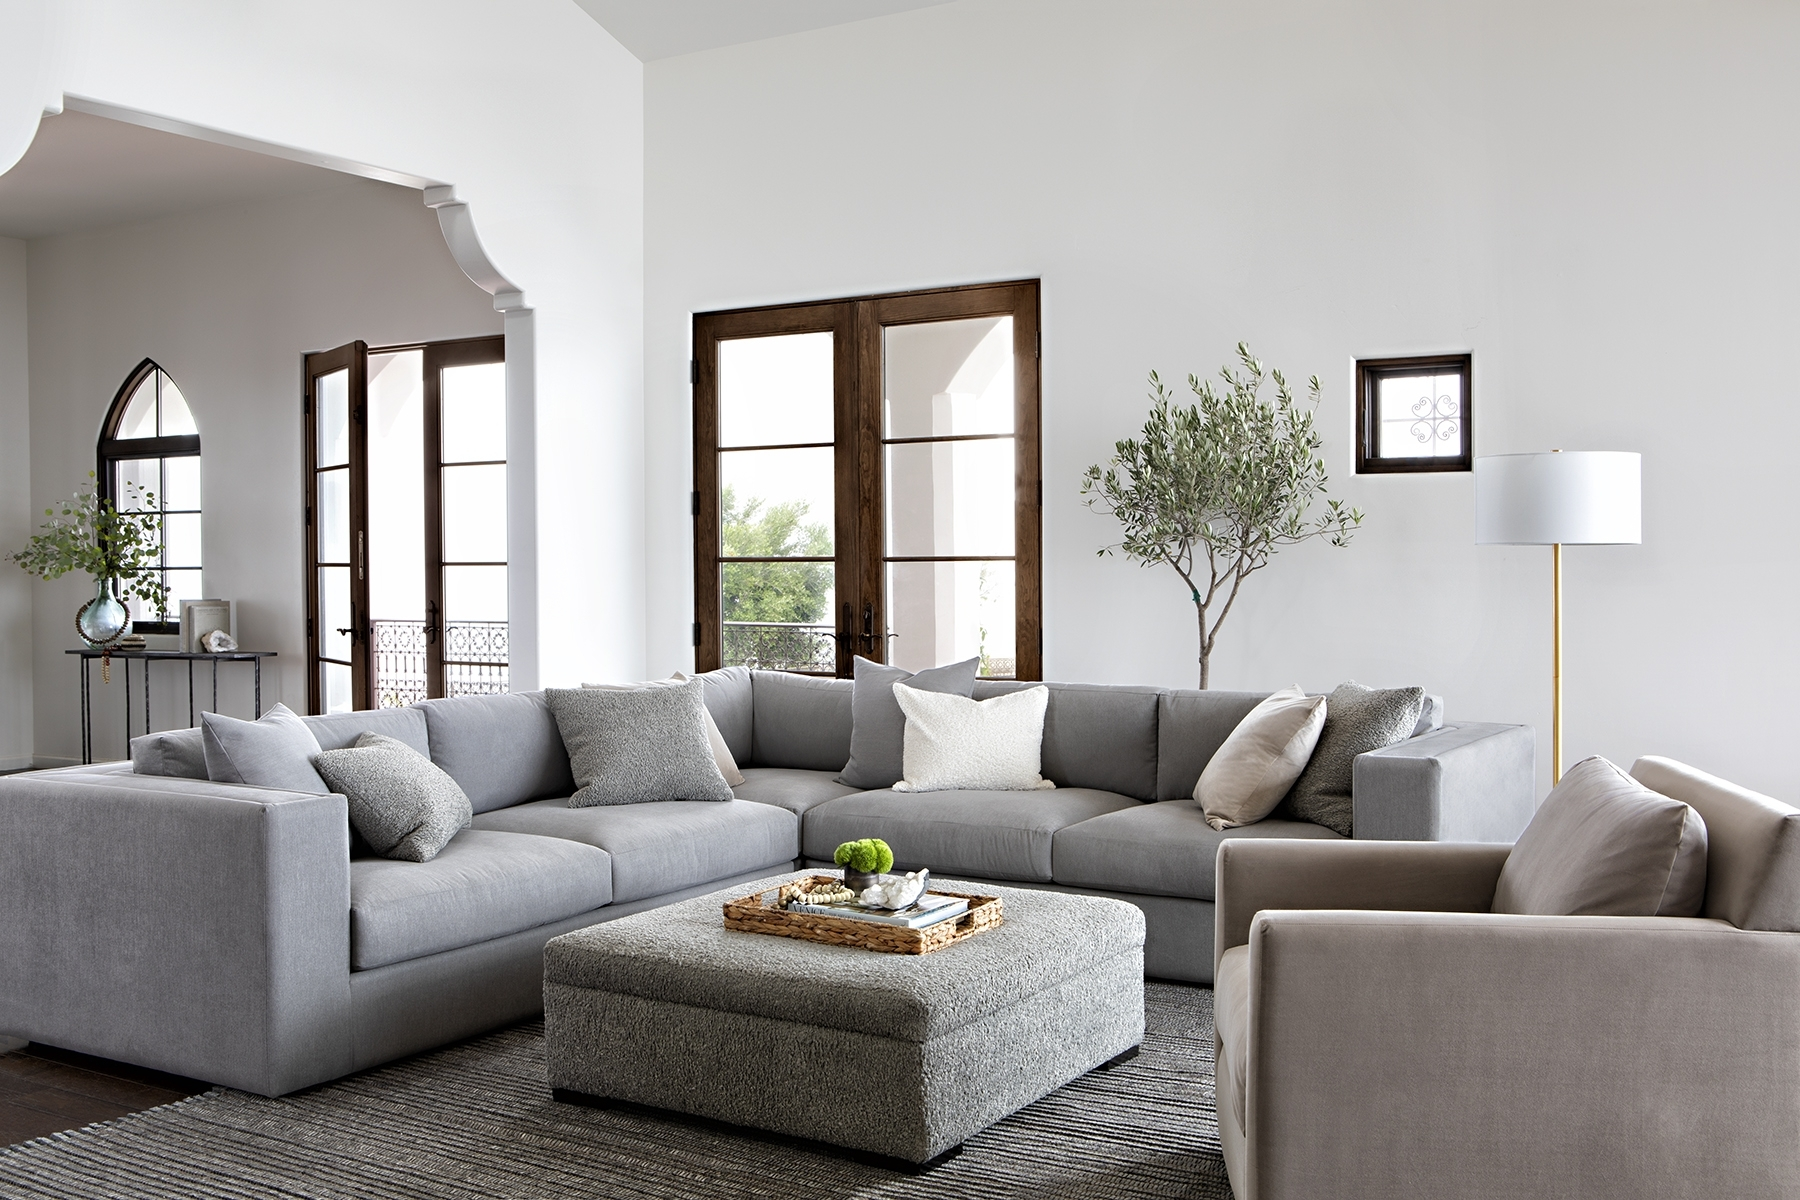 Nate Berkus & Jeremiah Brent's Newest Affordable Collection | Rue Intended For Soane 3 Piece Sectionals By Nate Berkus And Jeremiah Brent (Image 4 of 25)